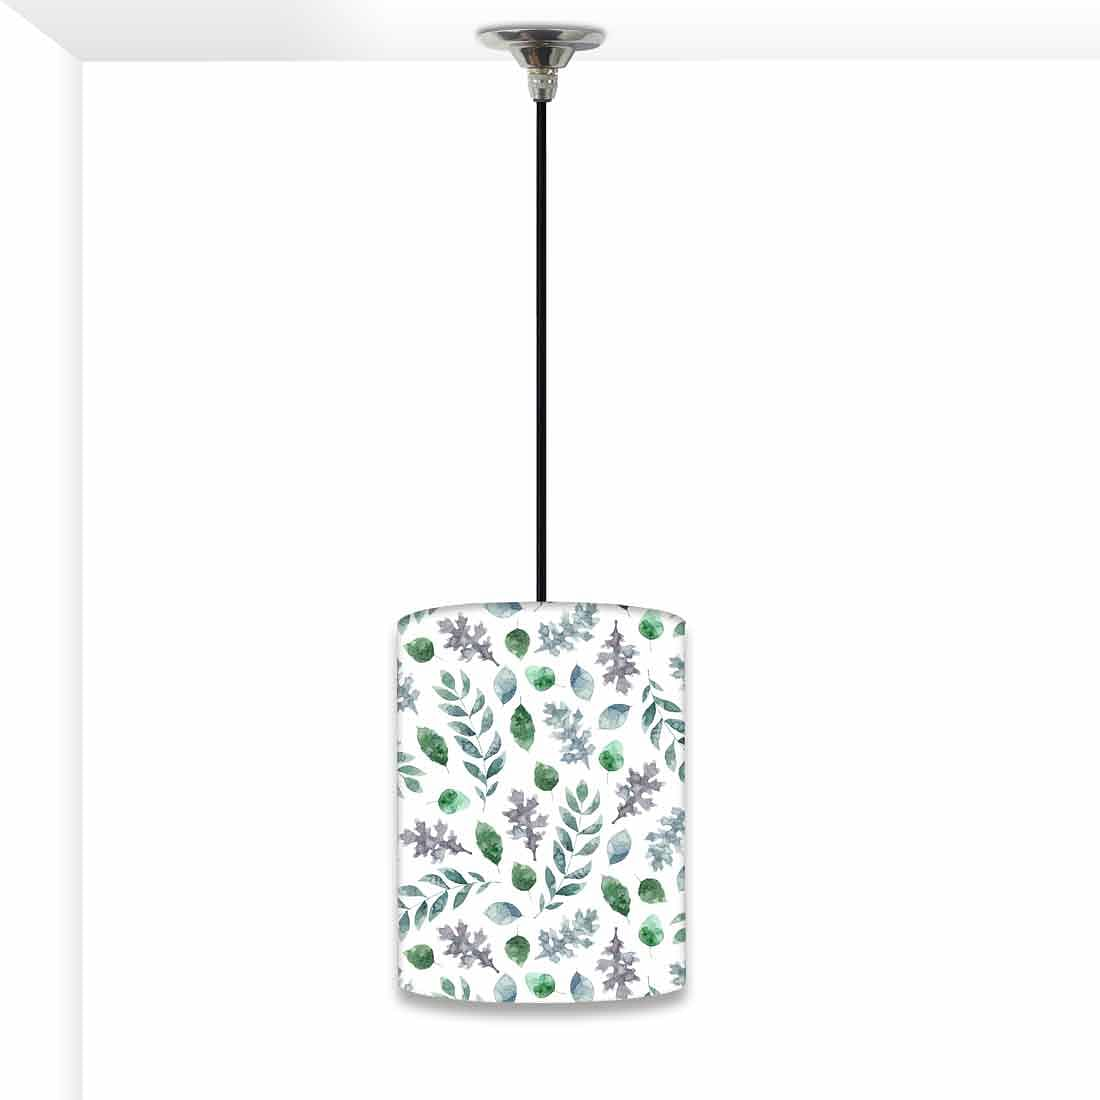 Ceiling Hanging Pendant Lamp Shade - Green Leaf